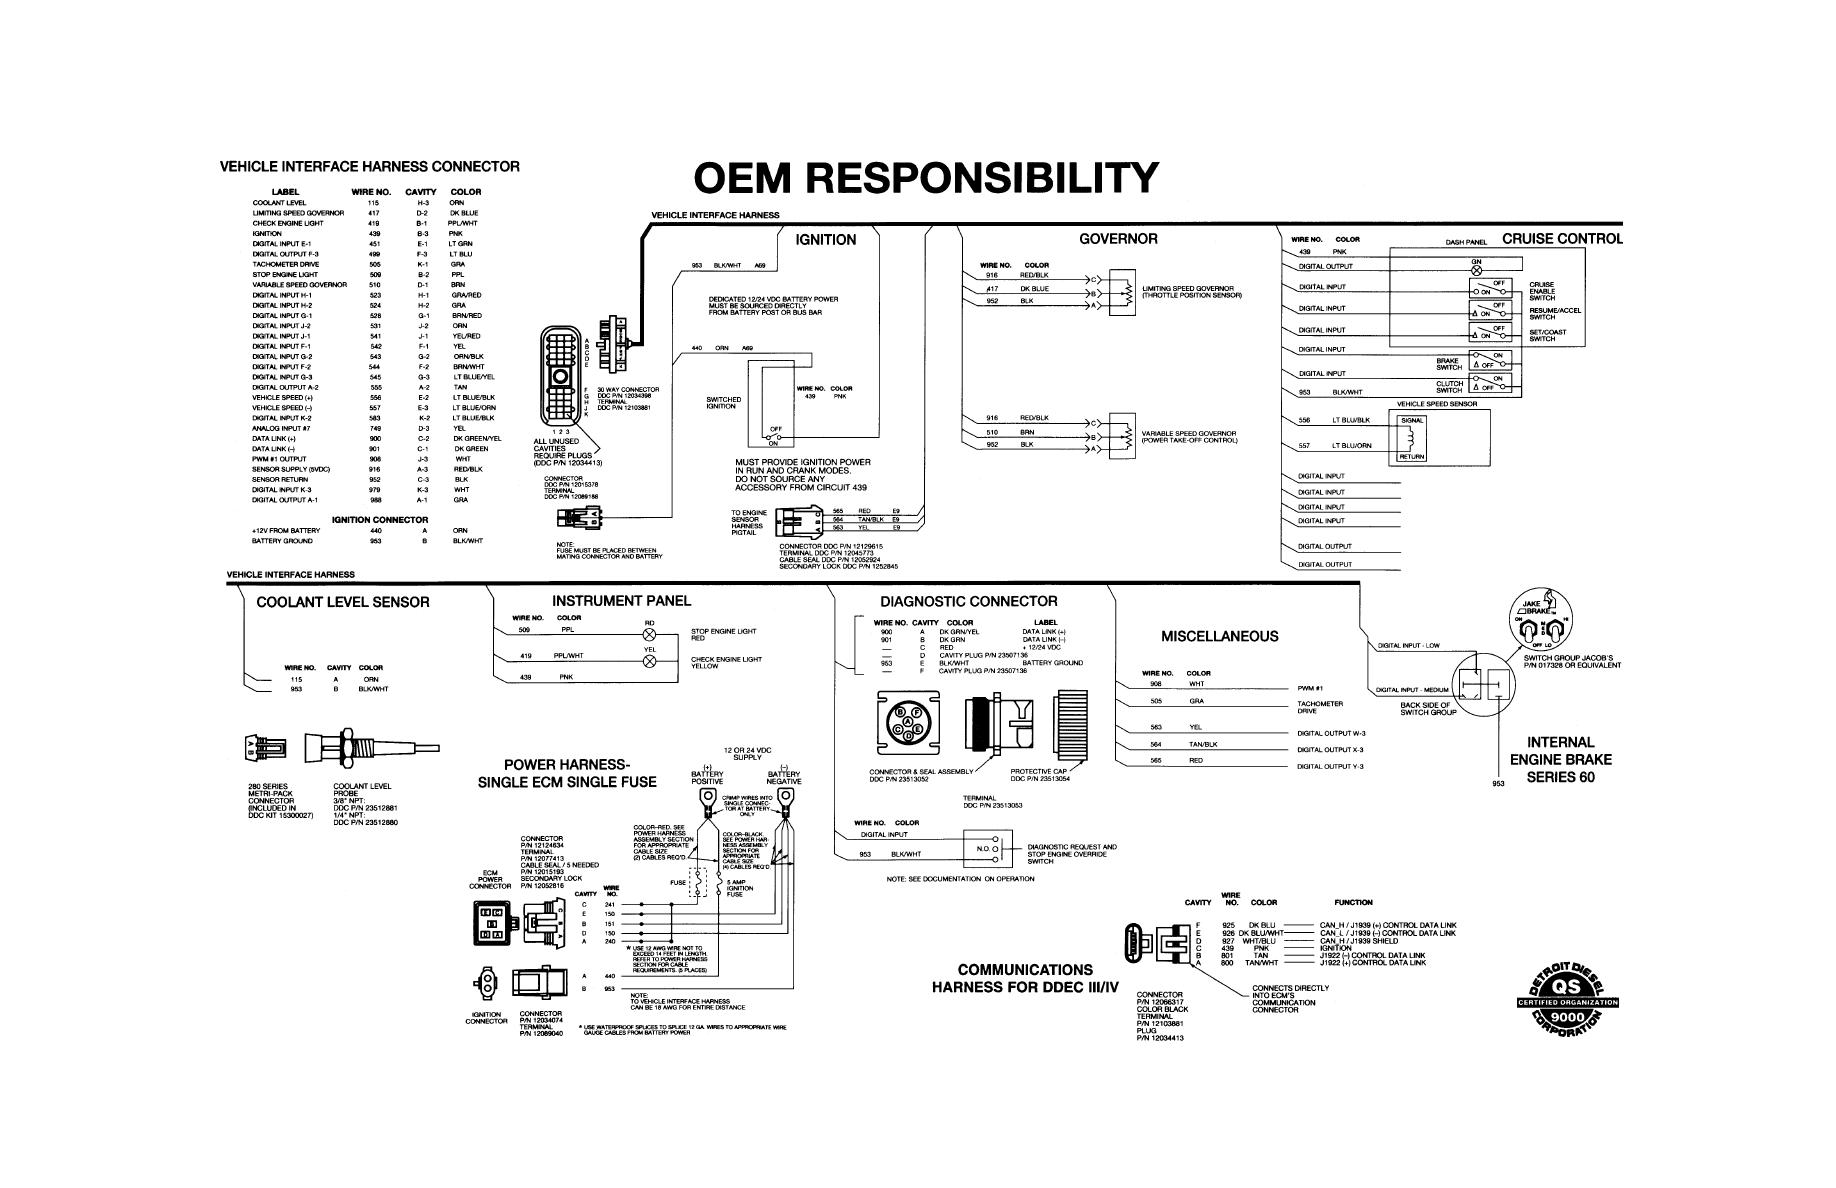 Ddec Ecm Iii Wiring Diagram Will Be A Thing Cummins M11 Iv Detroit Diesel Series 60